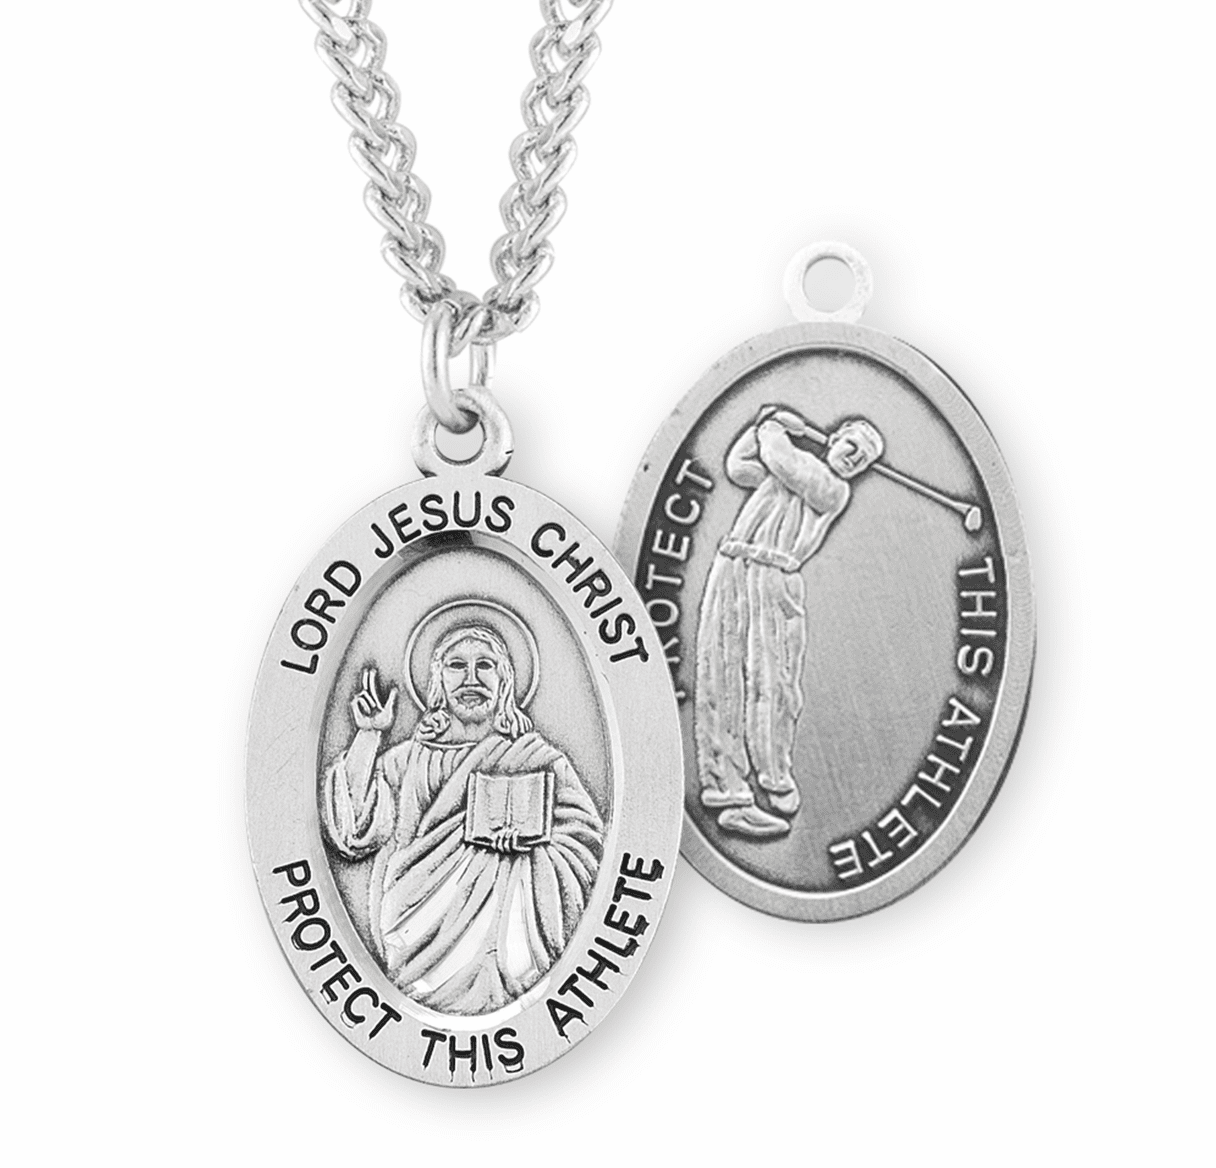 HMH Religious Jesus Christ Golf Oval Sterling Silver Sports Necklace